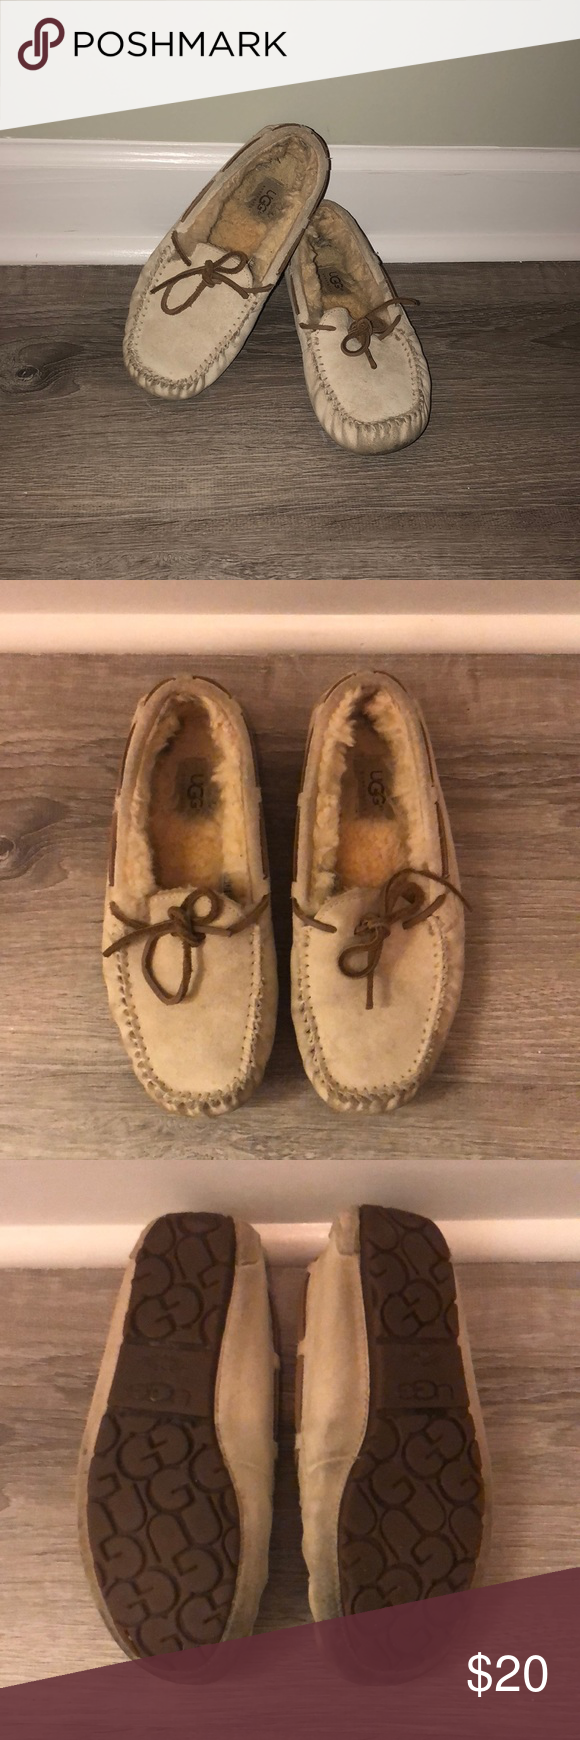 9a79ea7916a Ugg moccasins Uggs moccasins size 7 Some wear can be cleaned with ...